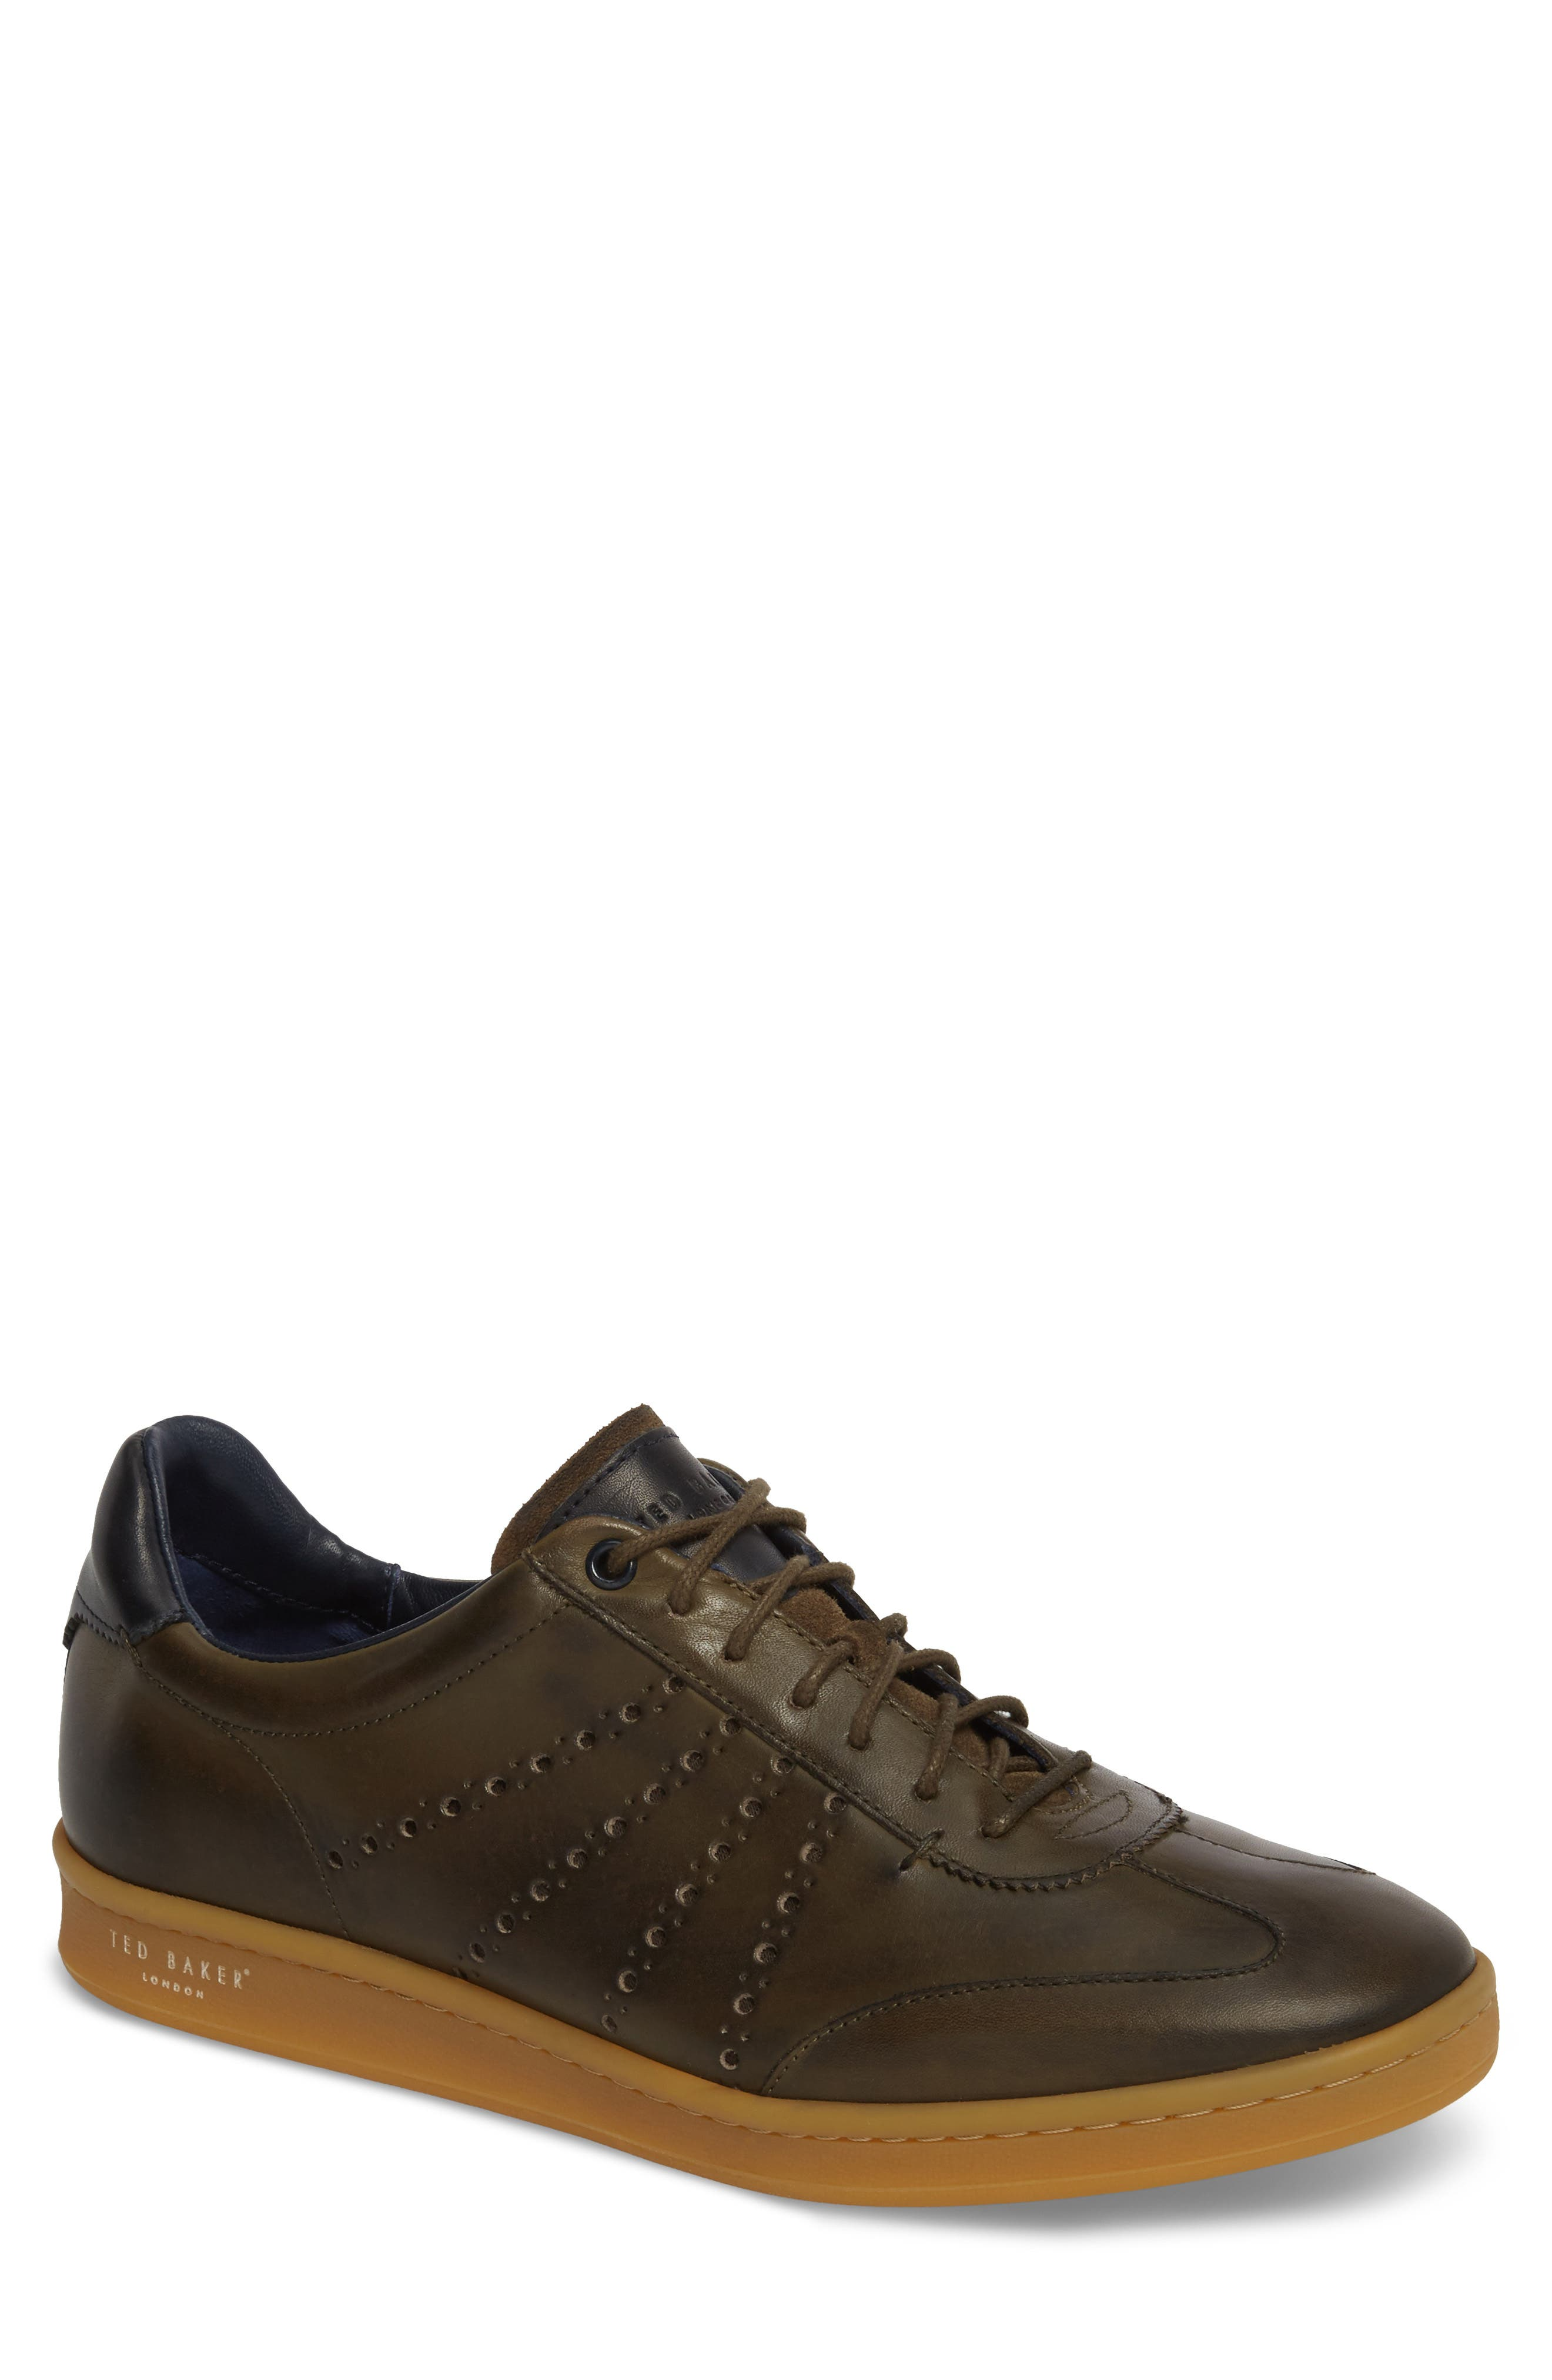 Orlee Sneaker,                             Main thumbnail 1, color,